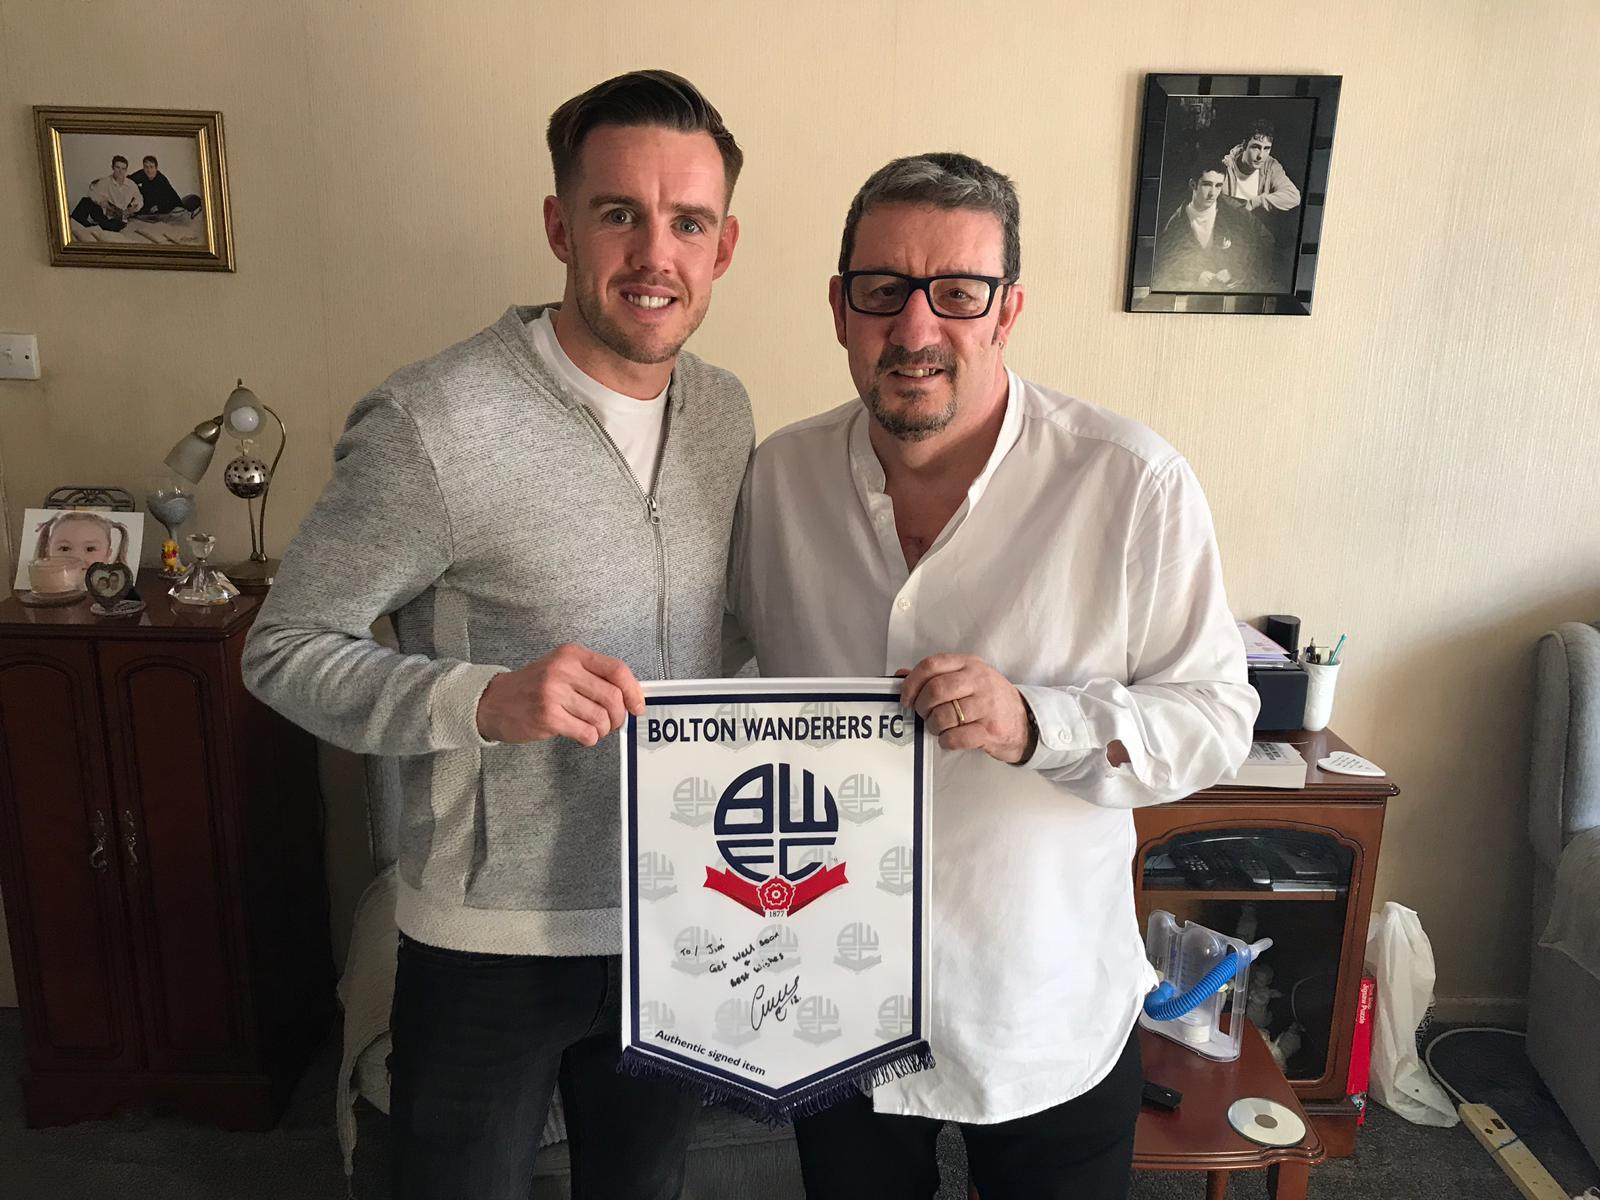 Bolton Wanderers star Craig Noone with lifelong fan Jim Waite